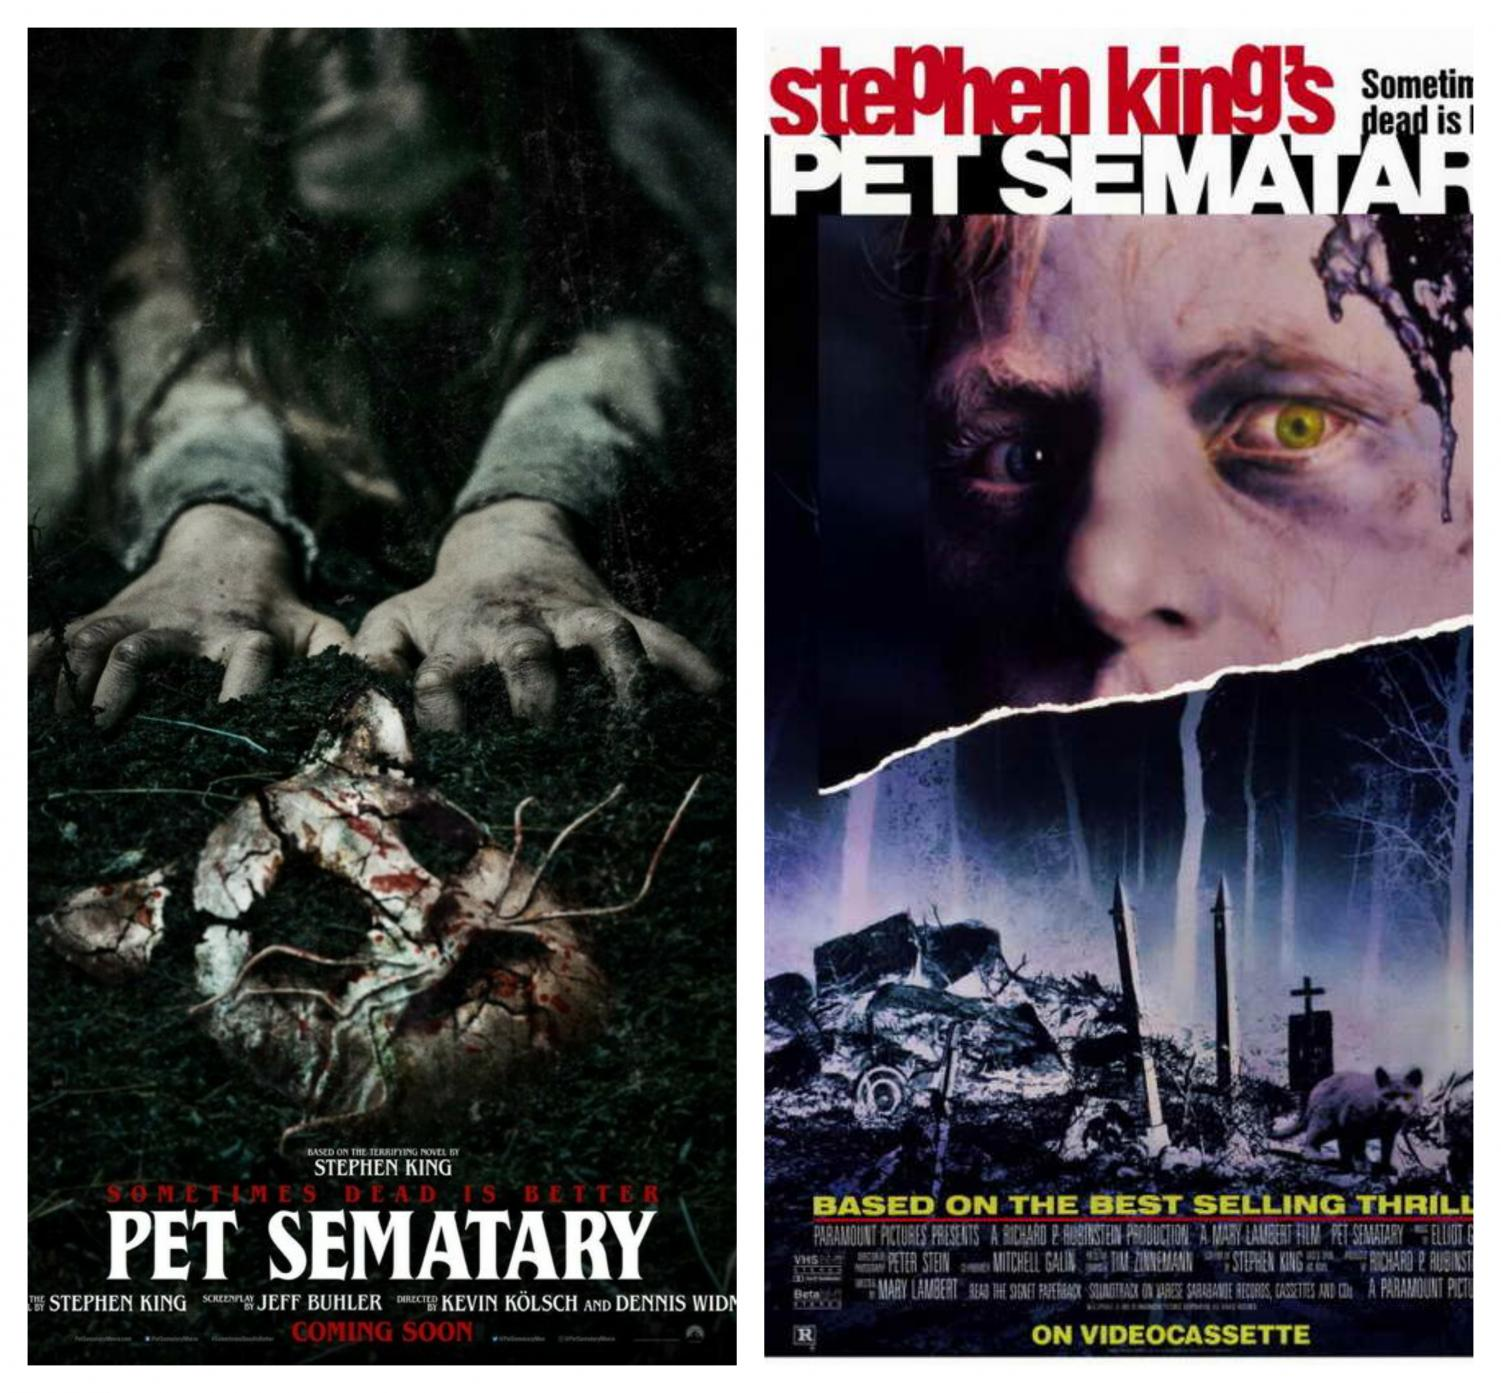 The 1989 version of Stephen King's infamous novel, Pet Sematary, returned this April with a modern day horror feel.